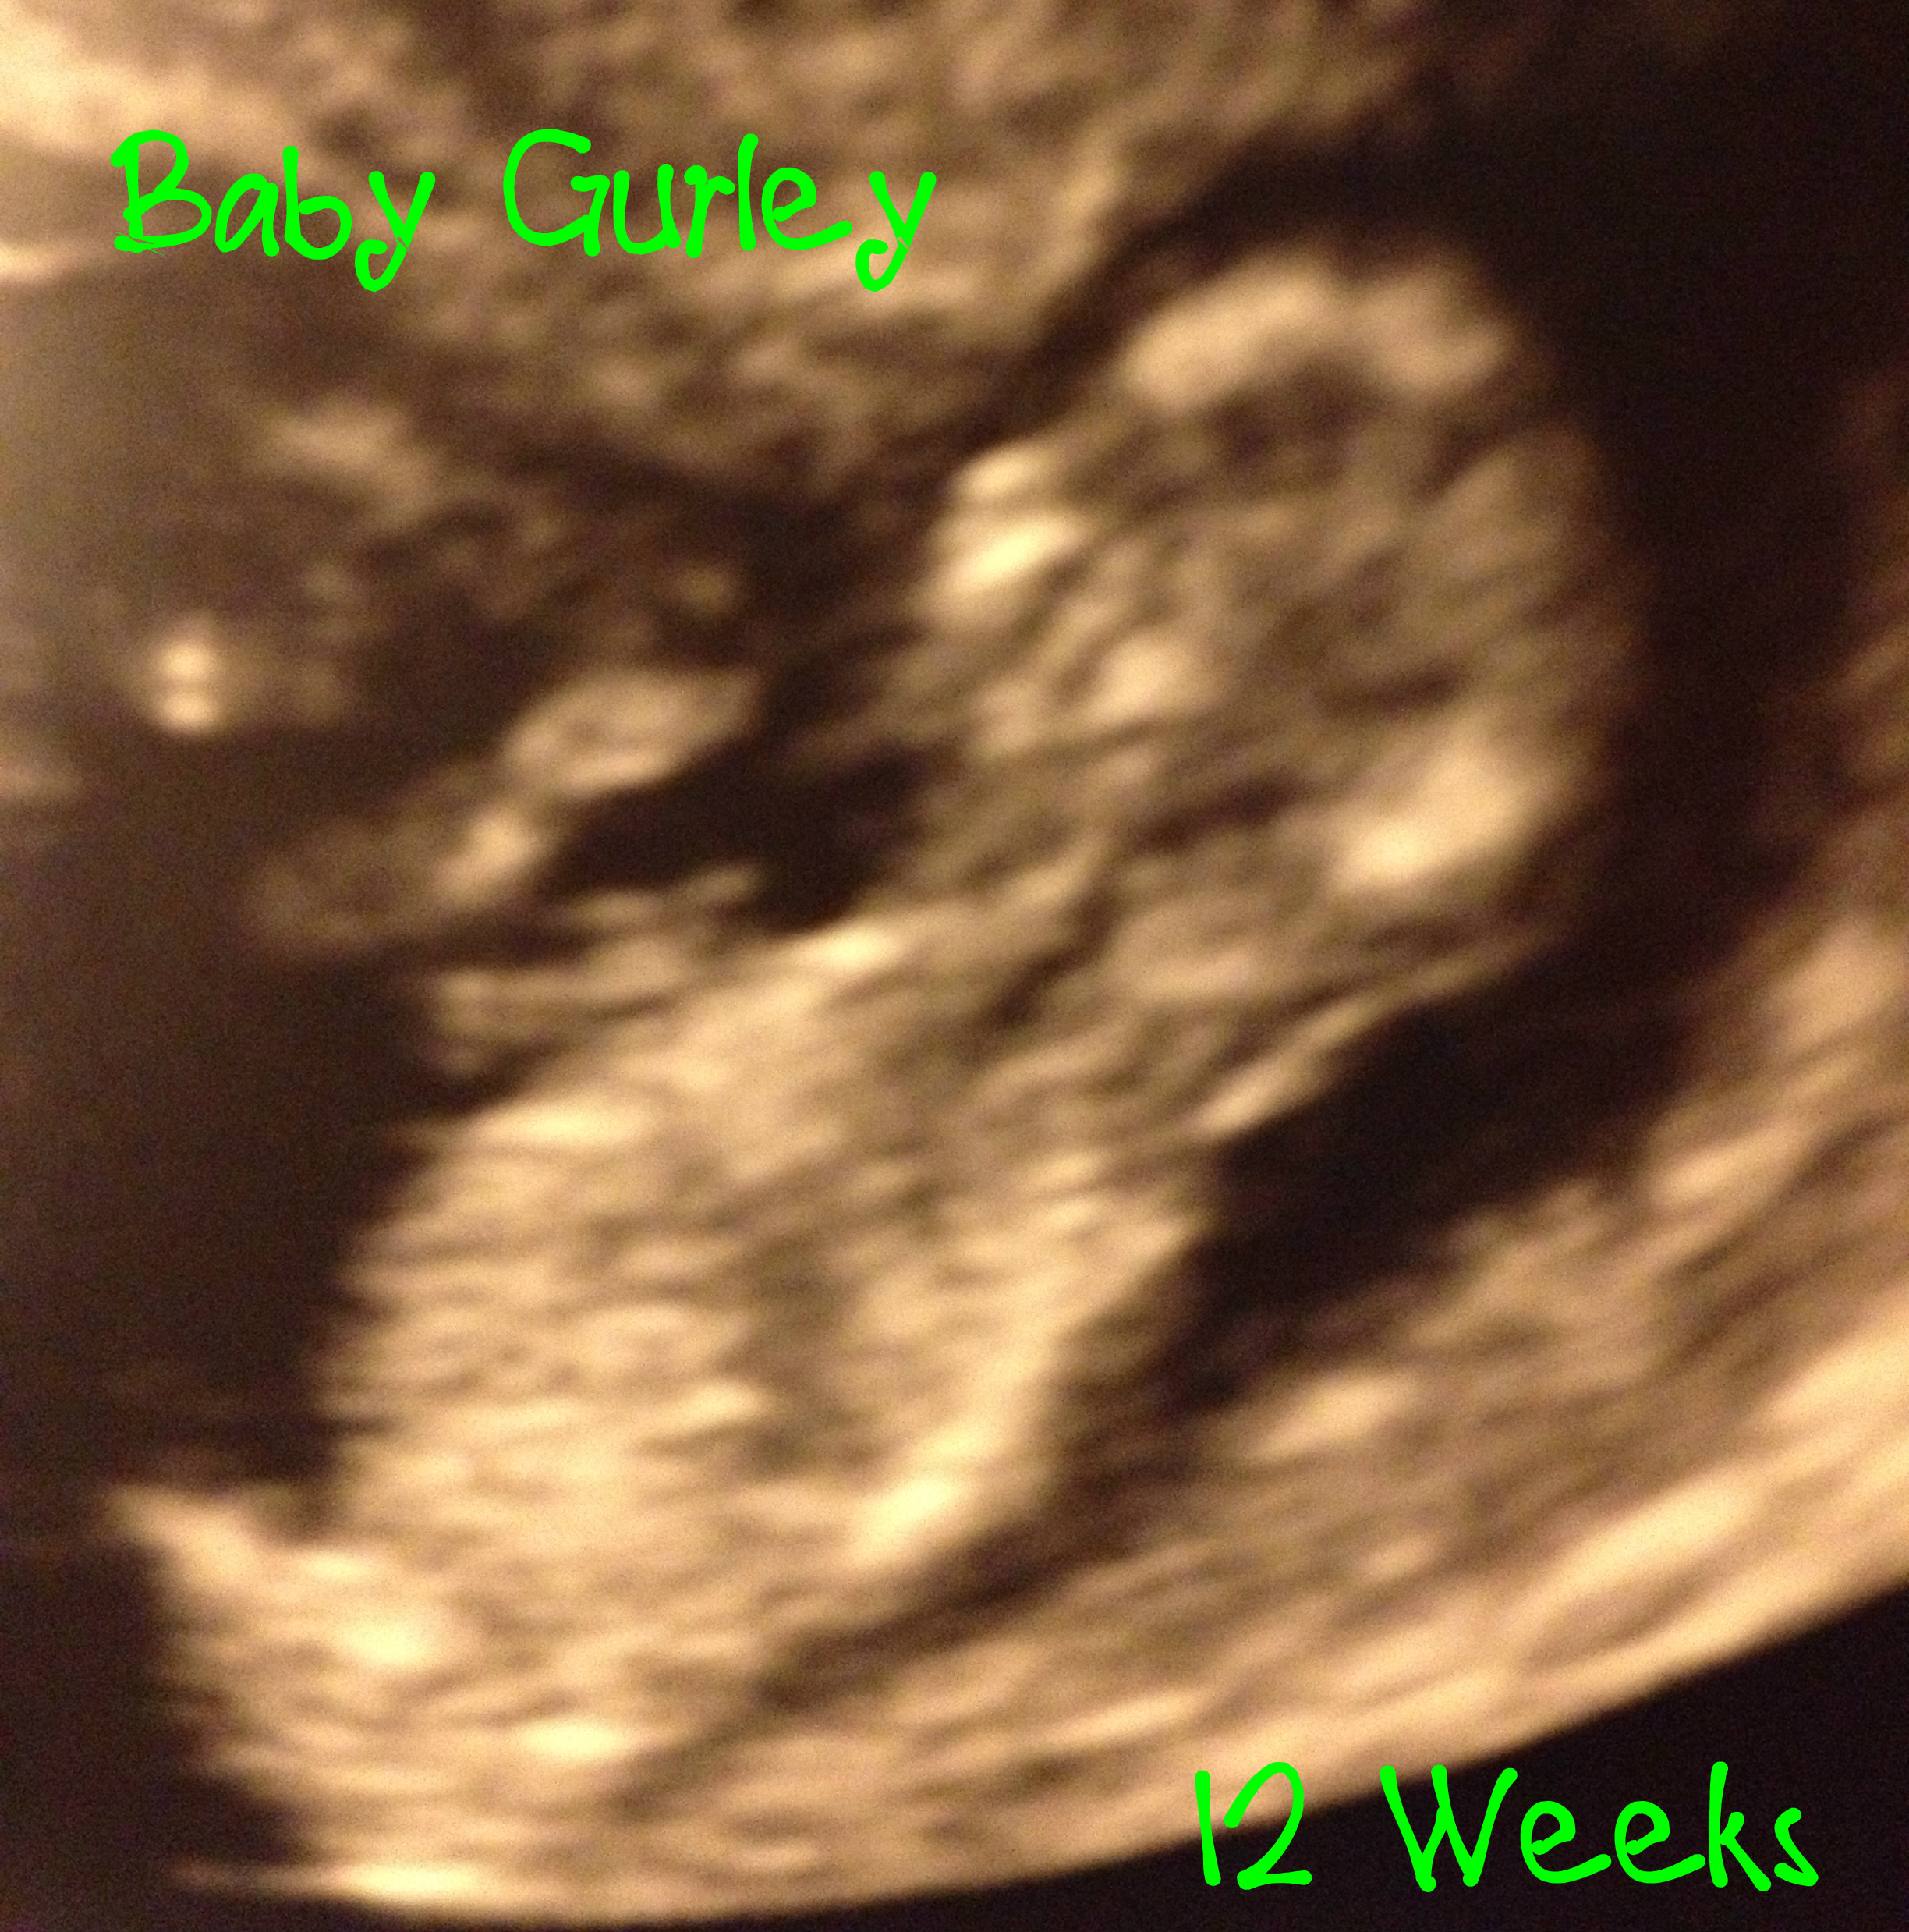 15 Weeks, 5 Days